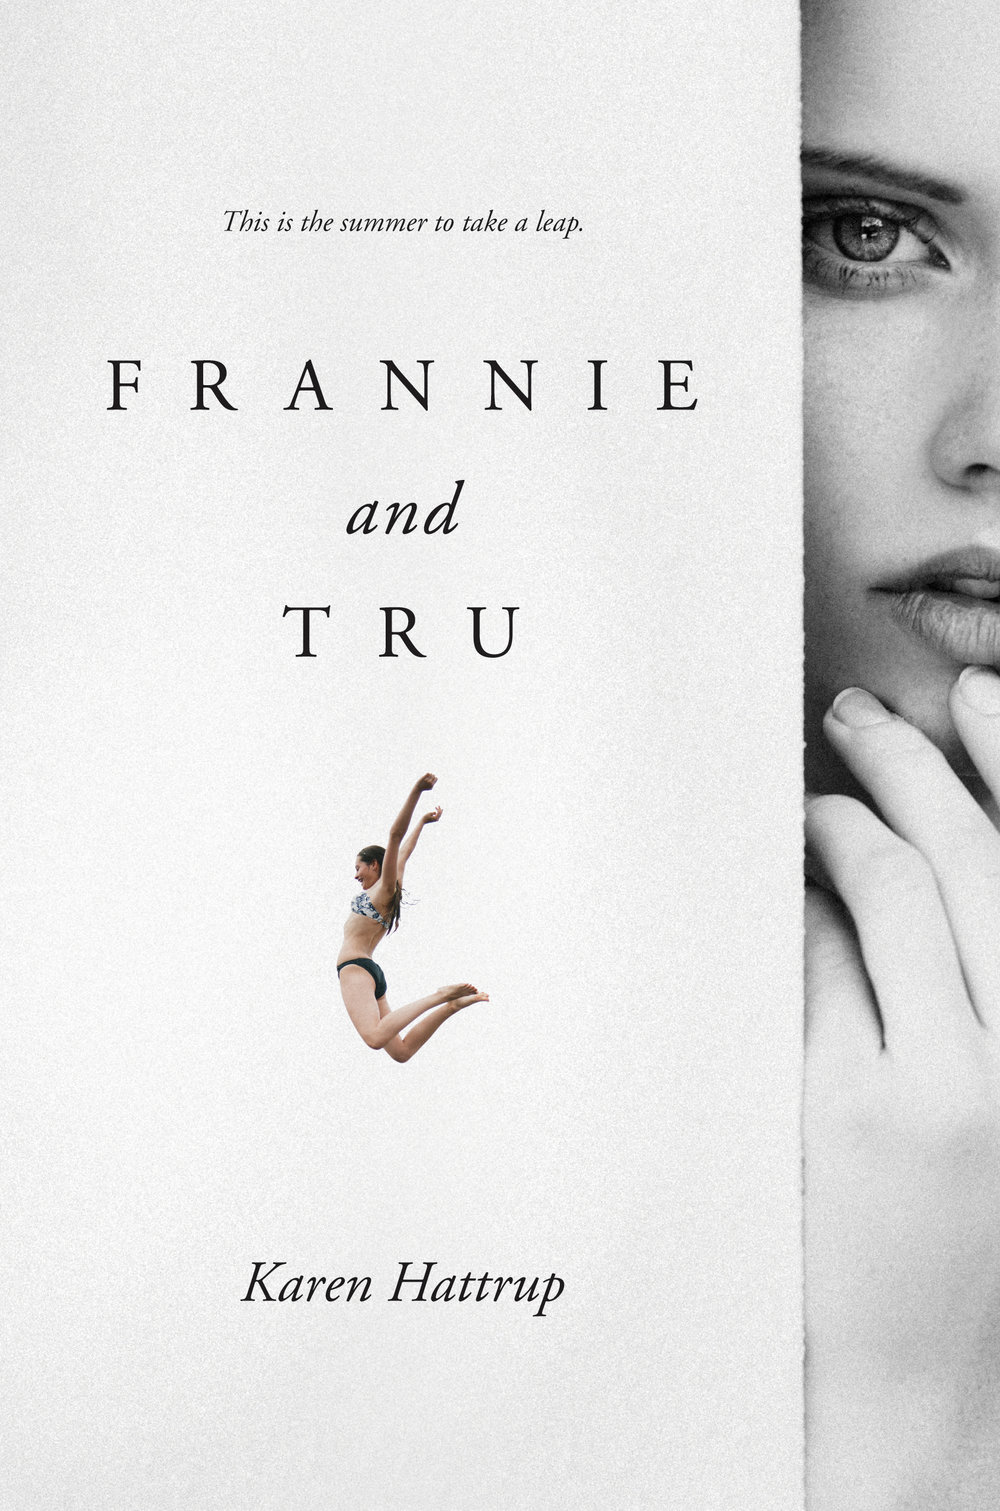 Frannie and Tru.jpg